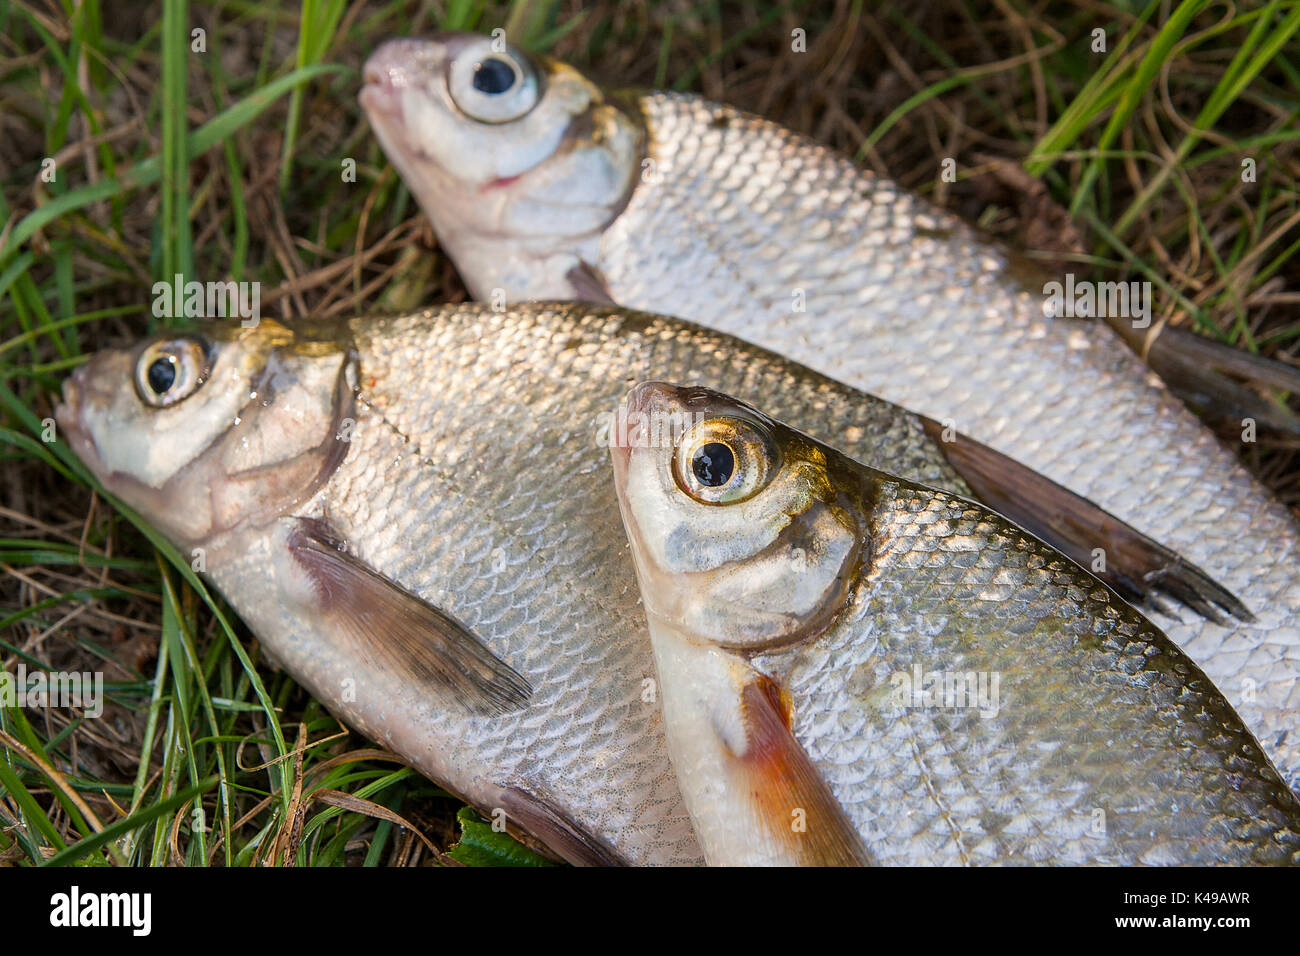 We have in stock frozen salted minnows year round - Several Just Taken From The Water Freshwater Common Bream Known As Bronze Bream Or Carp Bream